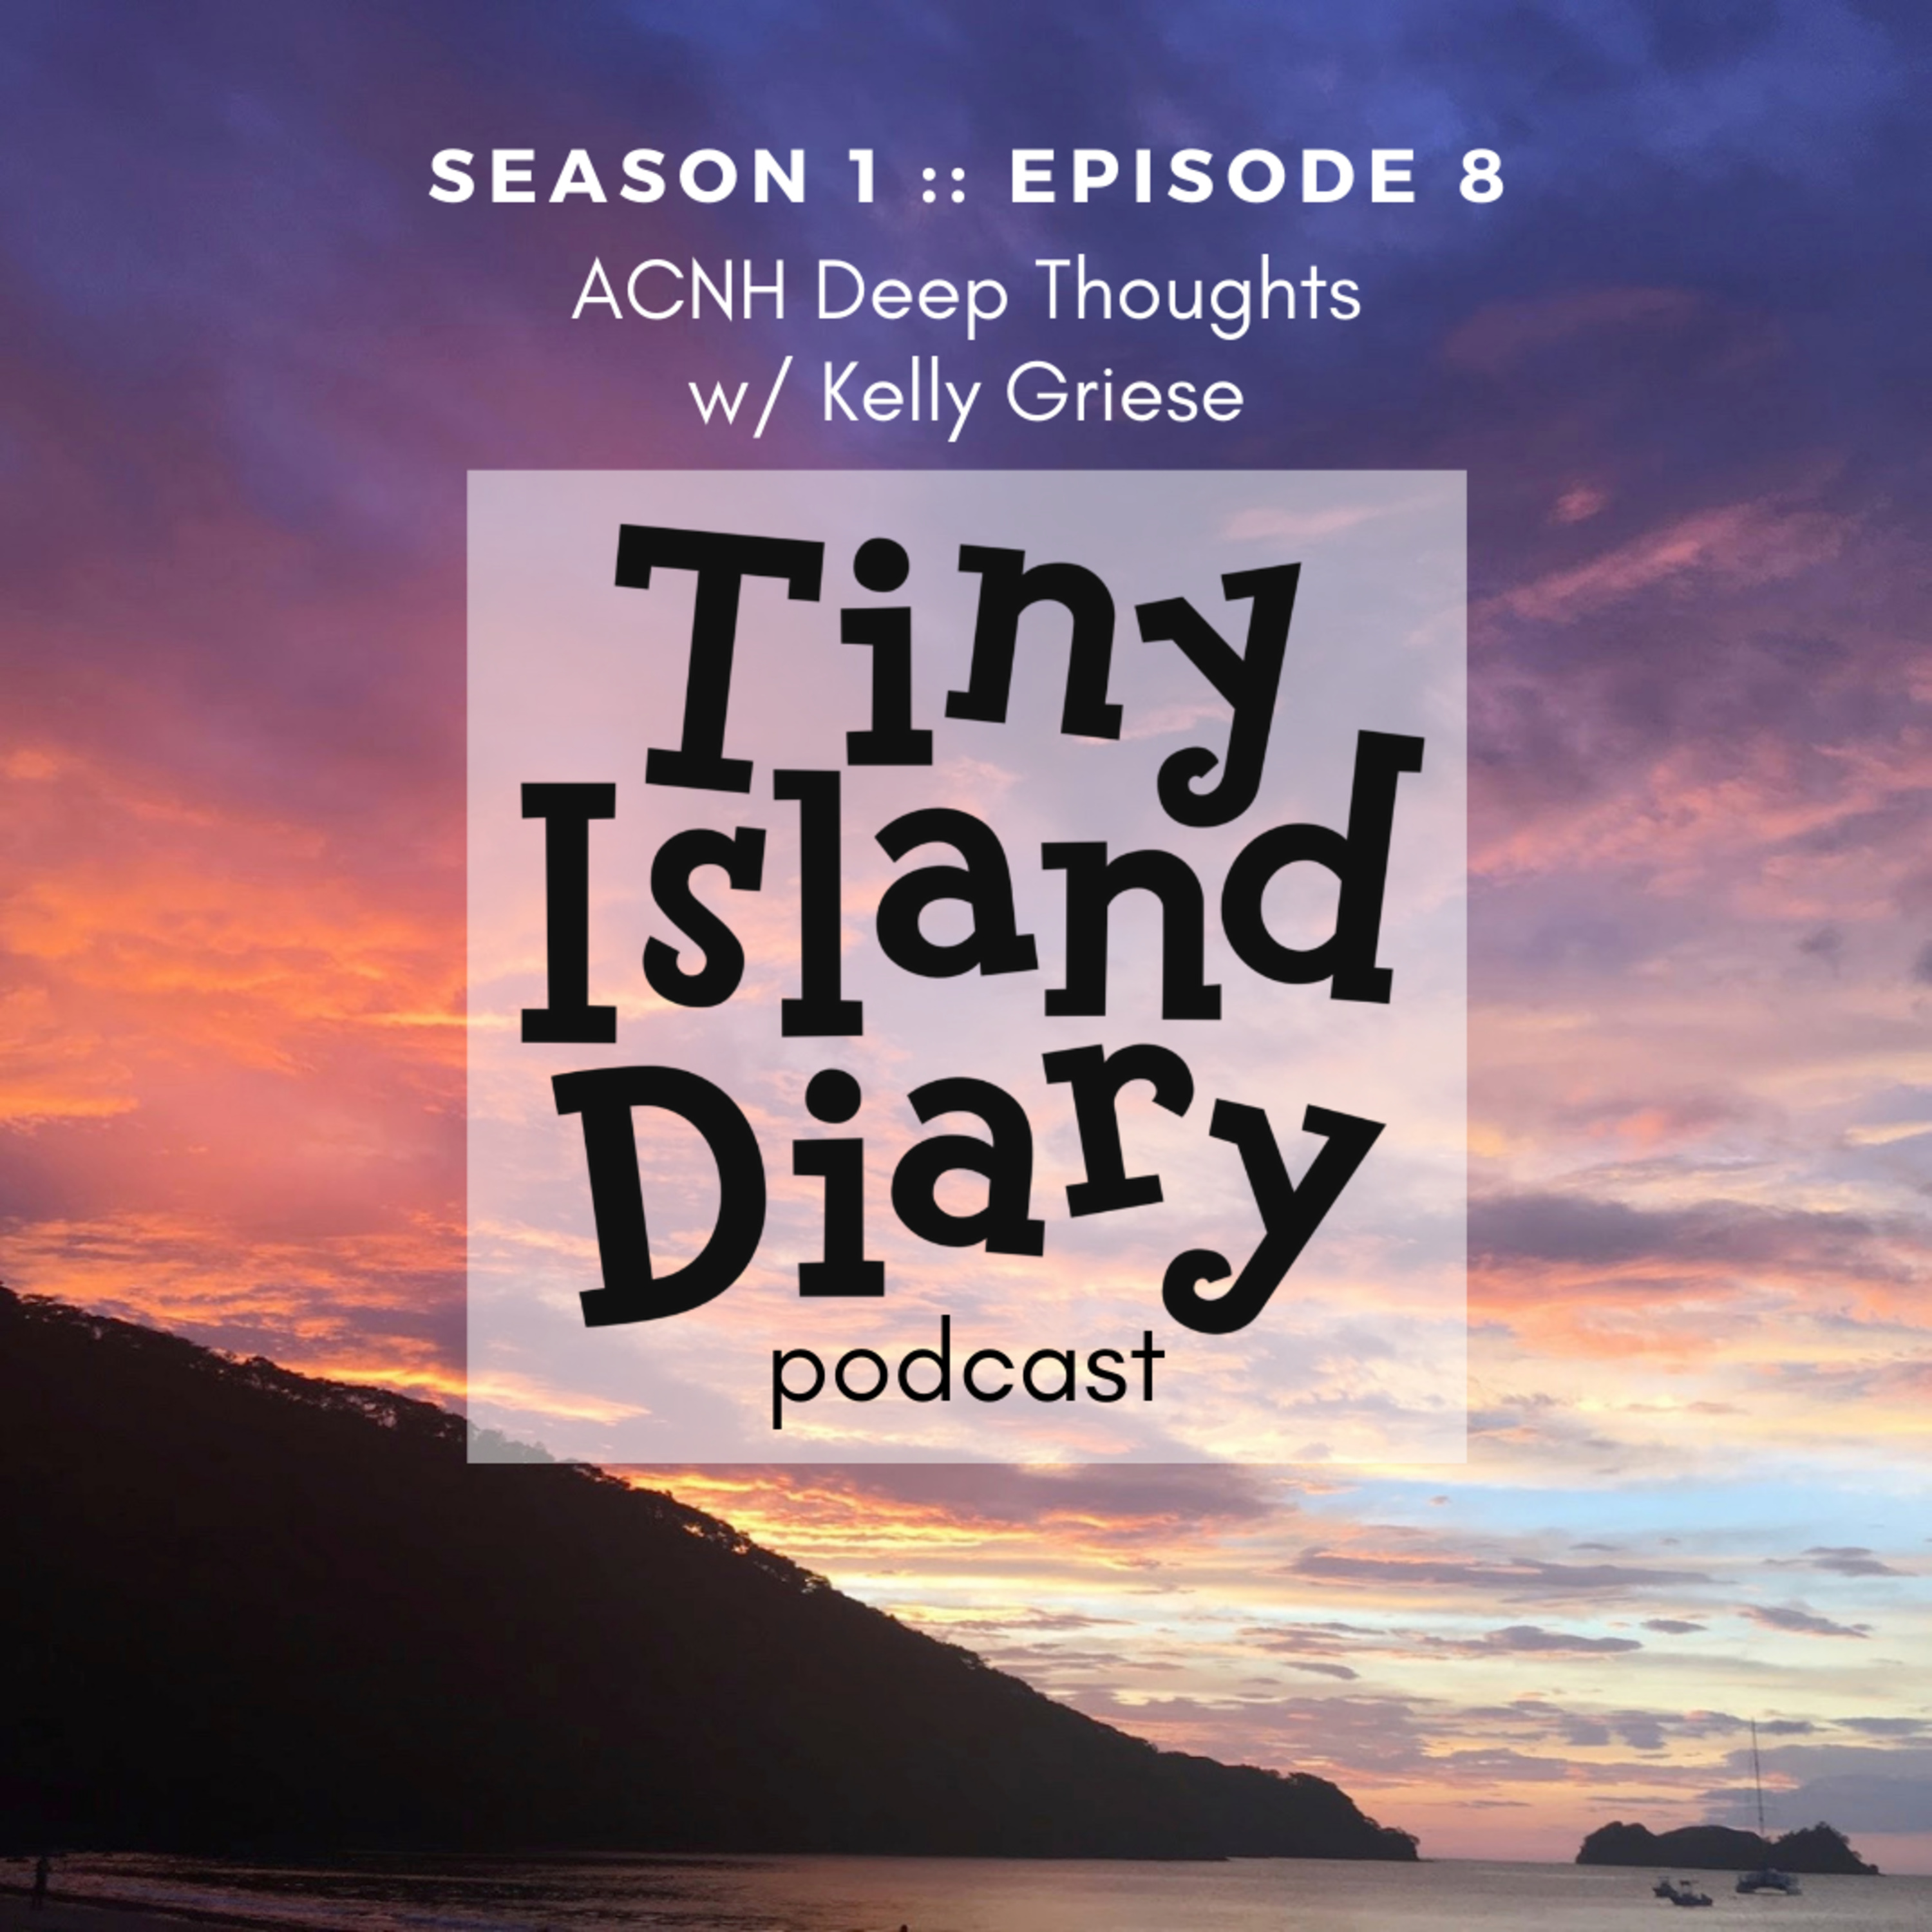 S1E8: #ACNH Deep Thoughts w/ Kelly Griese